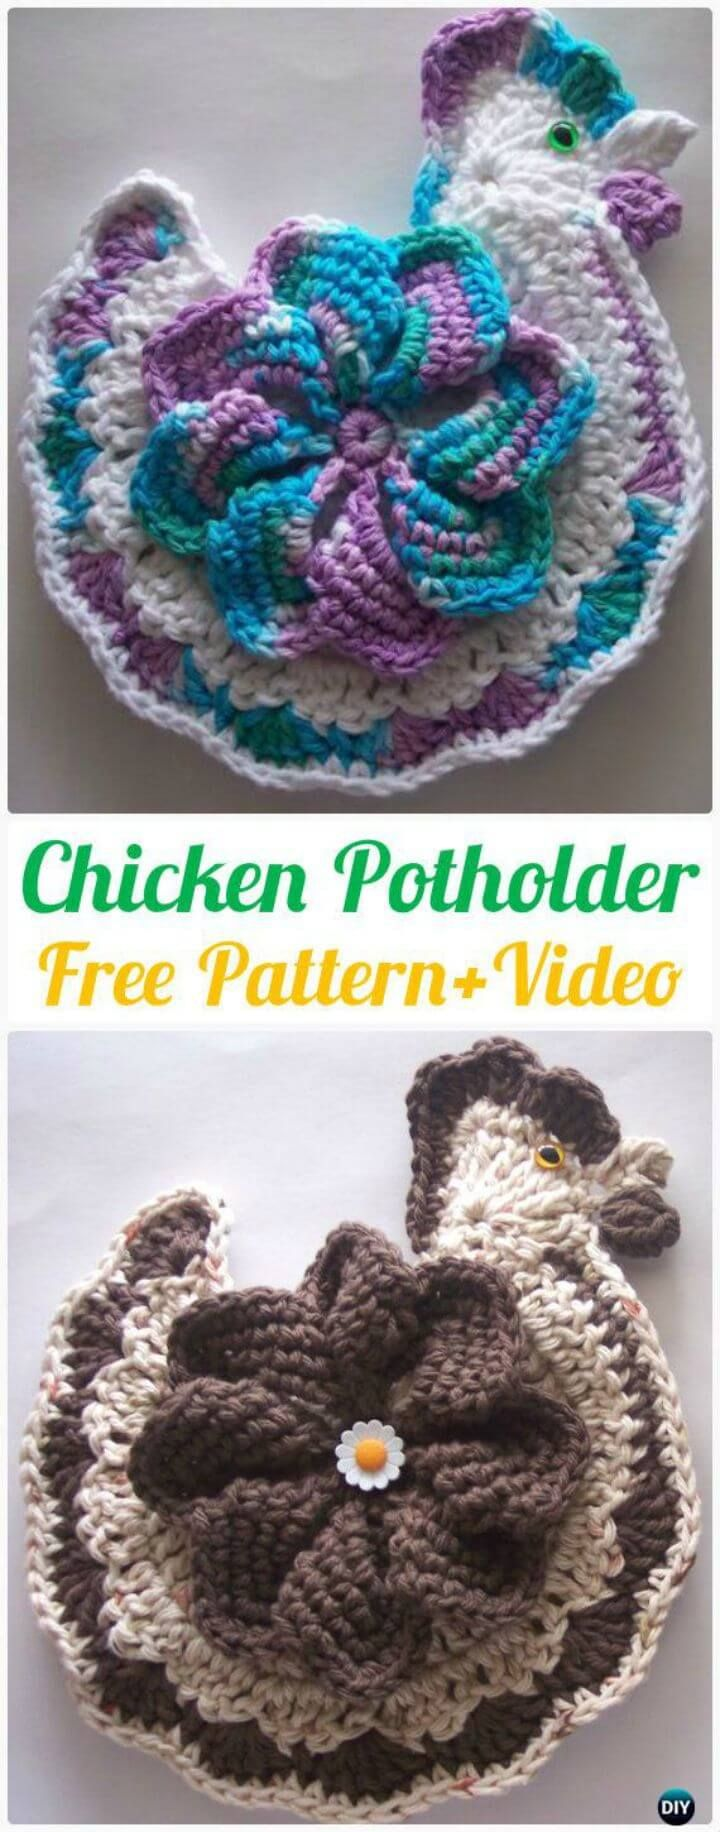 112 Free Crochet Potholder Patterns #crochetpotholderpatterns